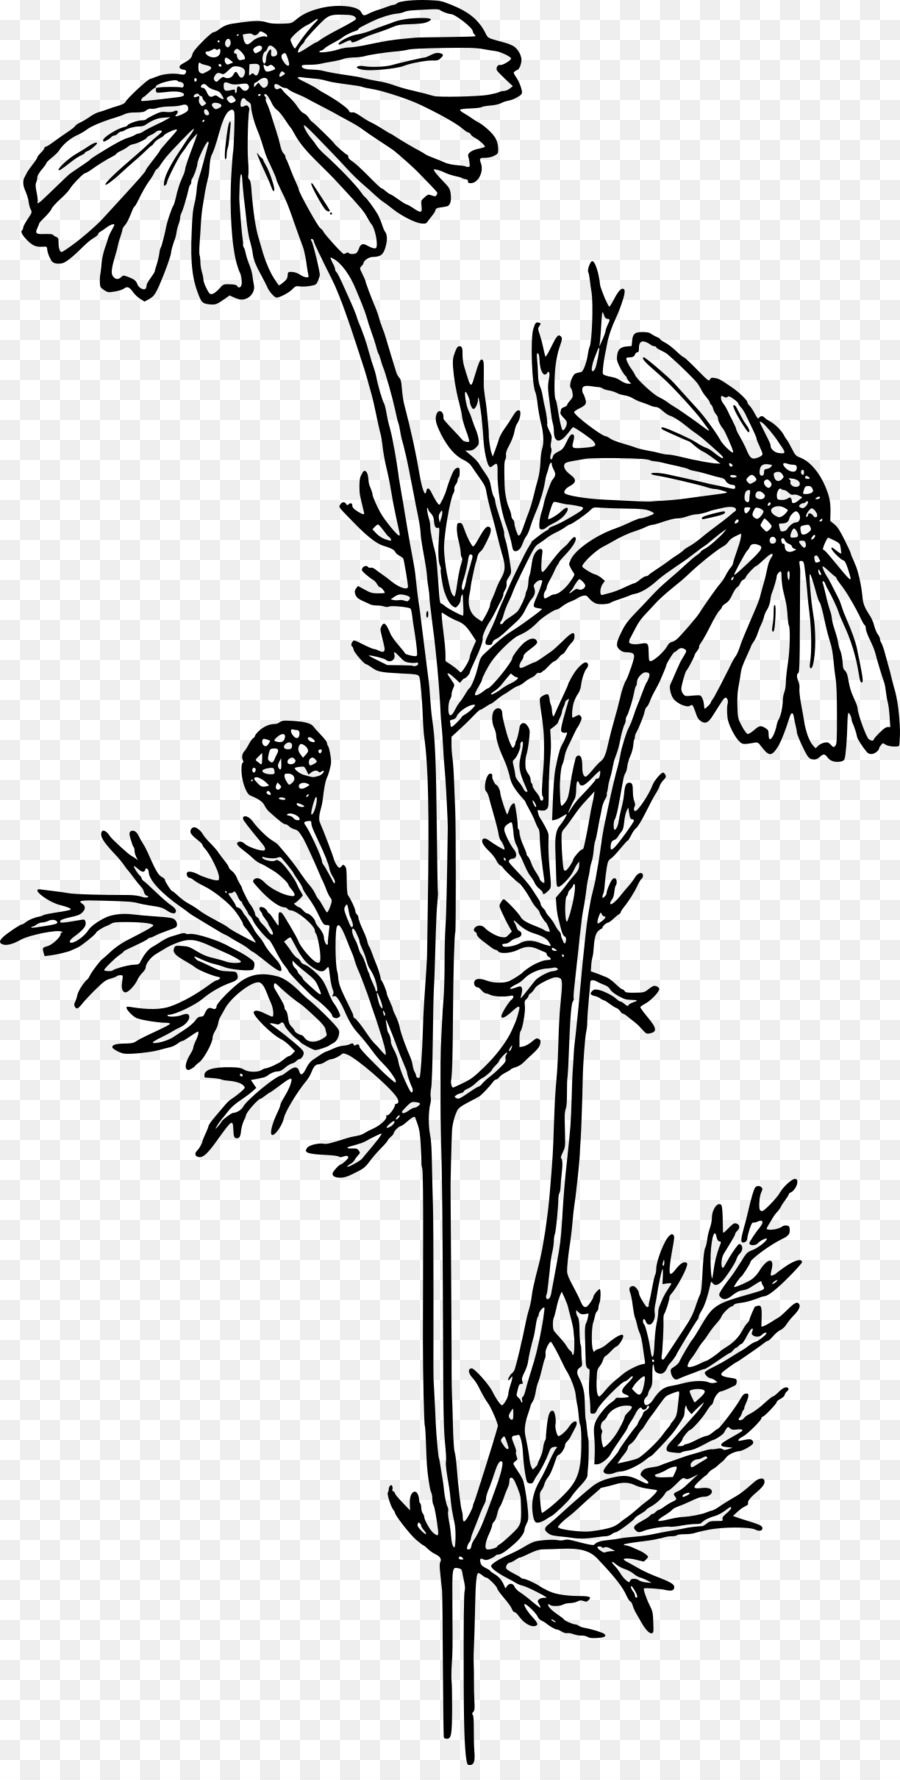 Coloring Book Drawing Flower Common Daisy Flower Png Download